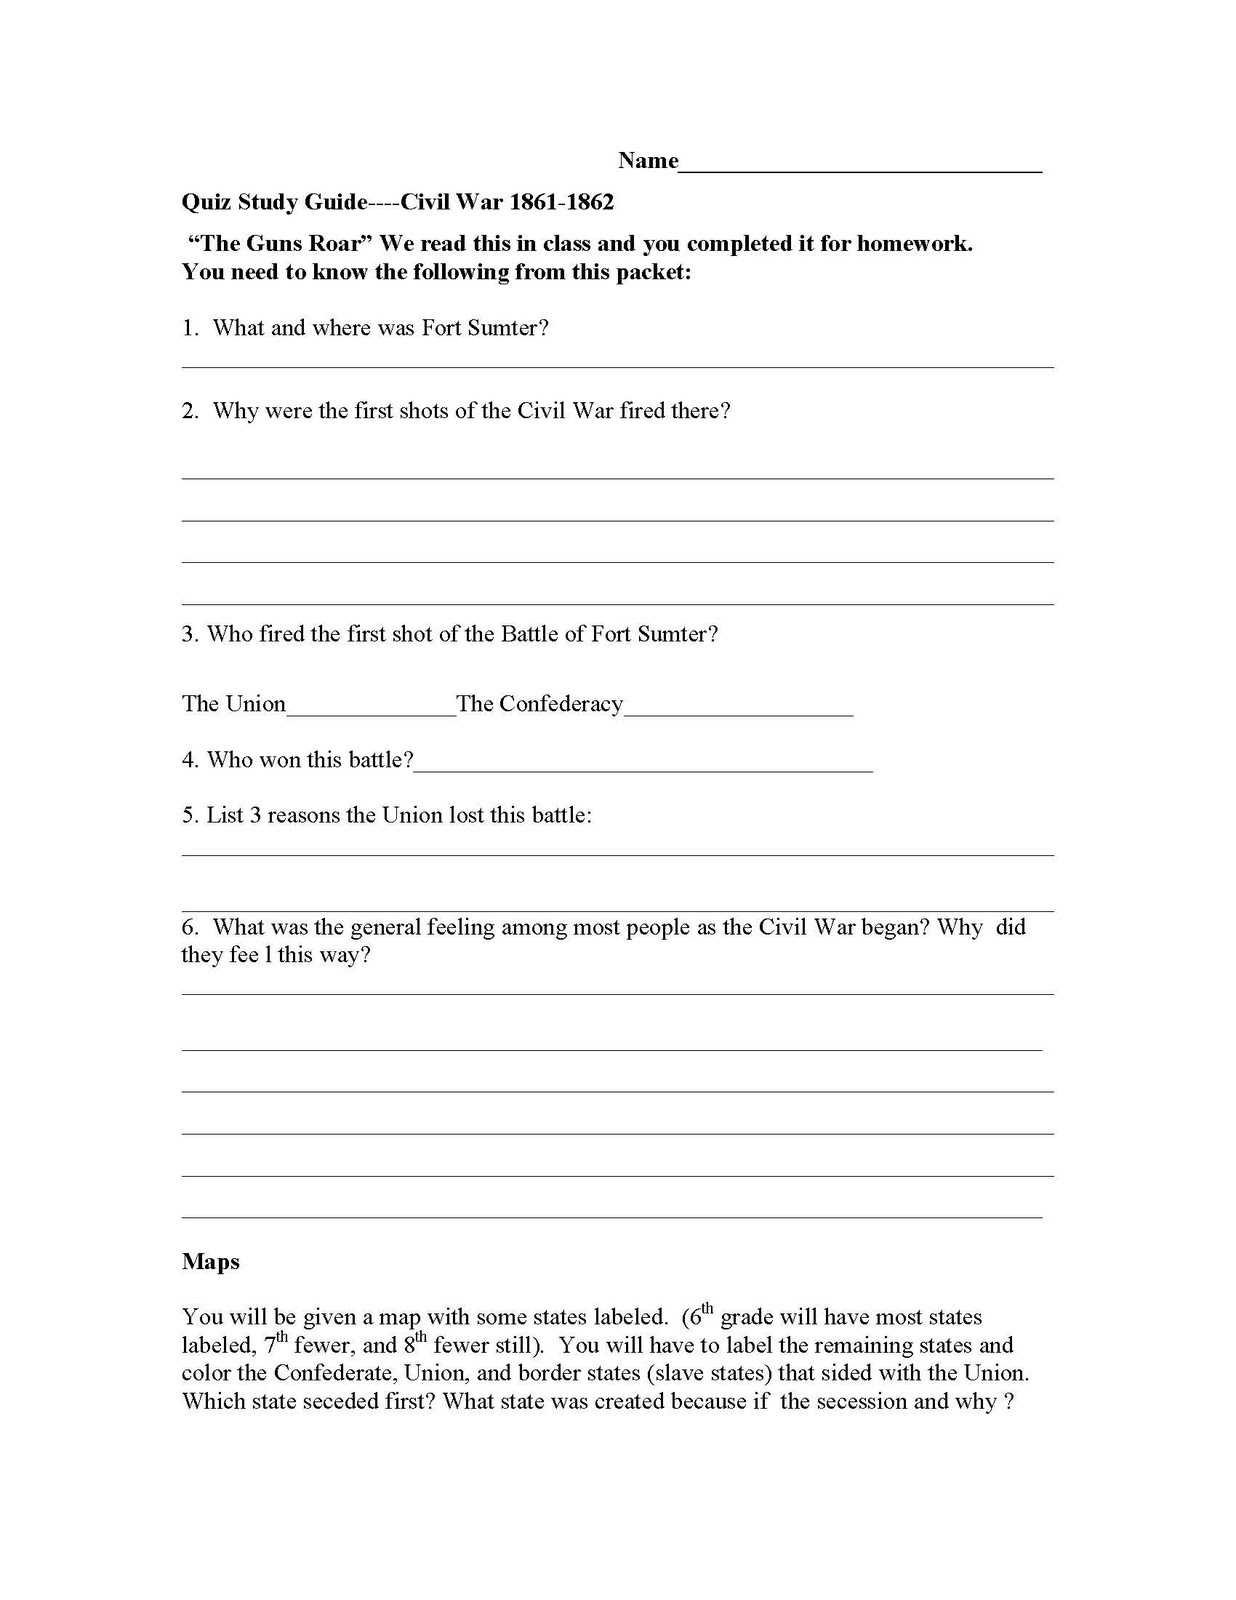 Synergy Humanities Study Guide For Civil War Test